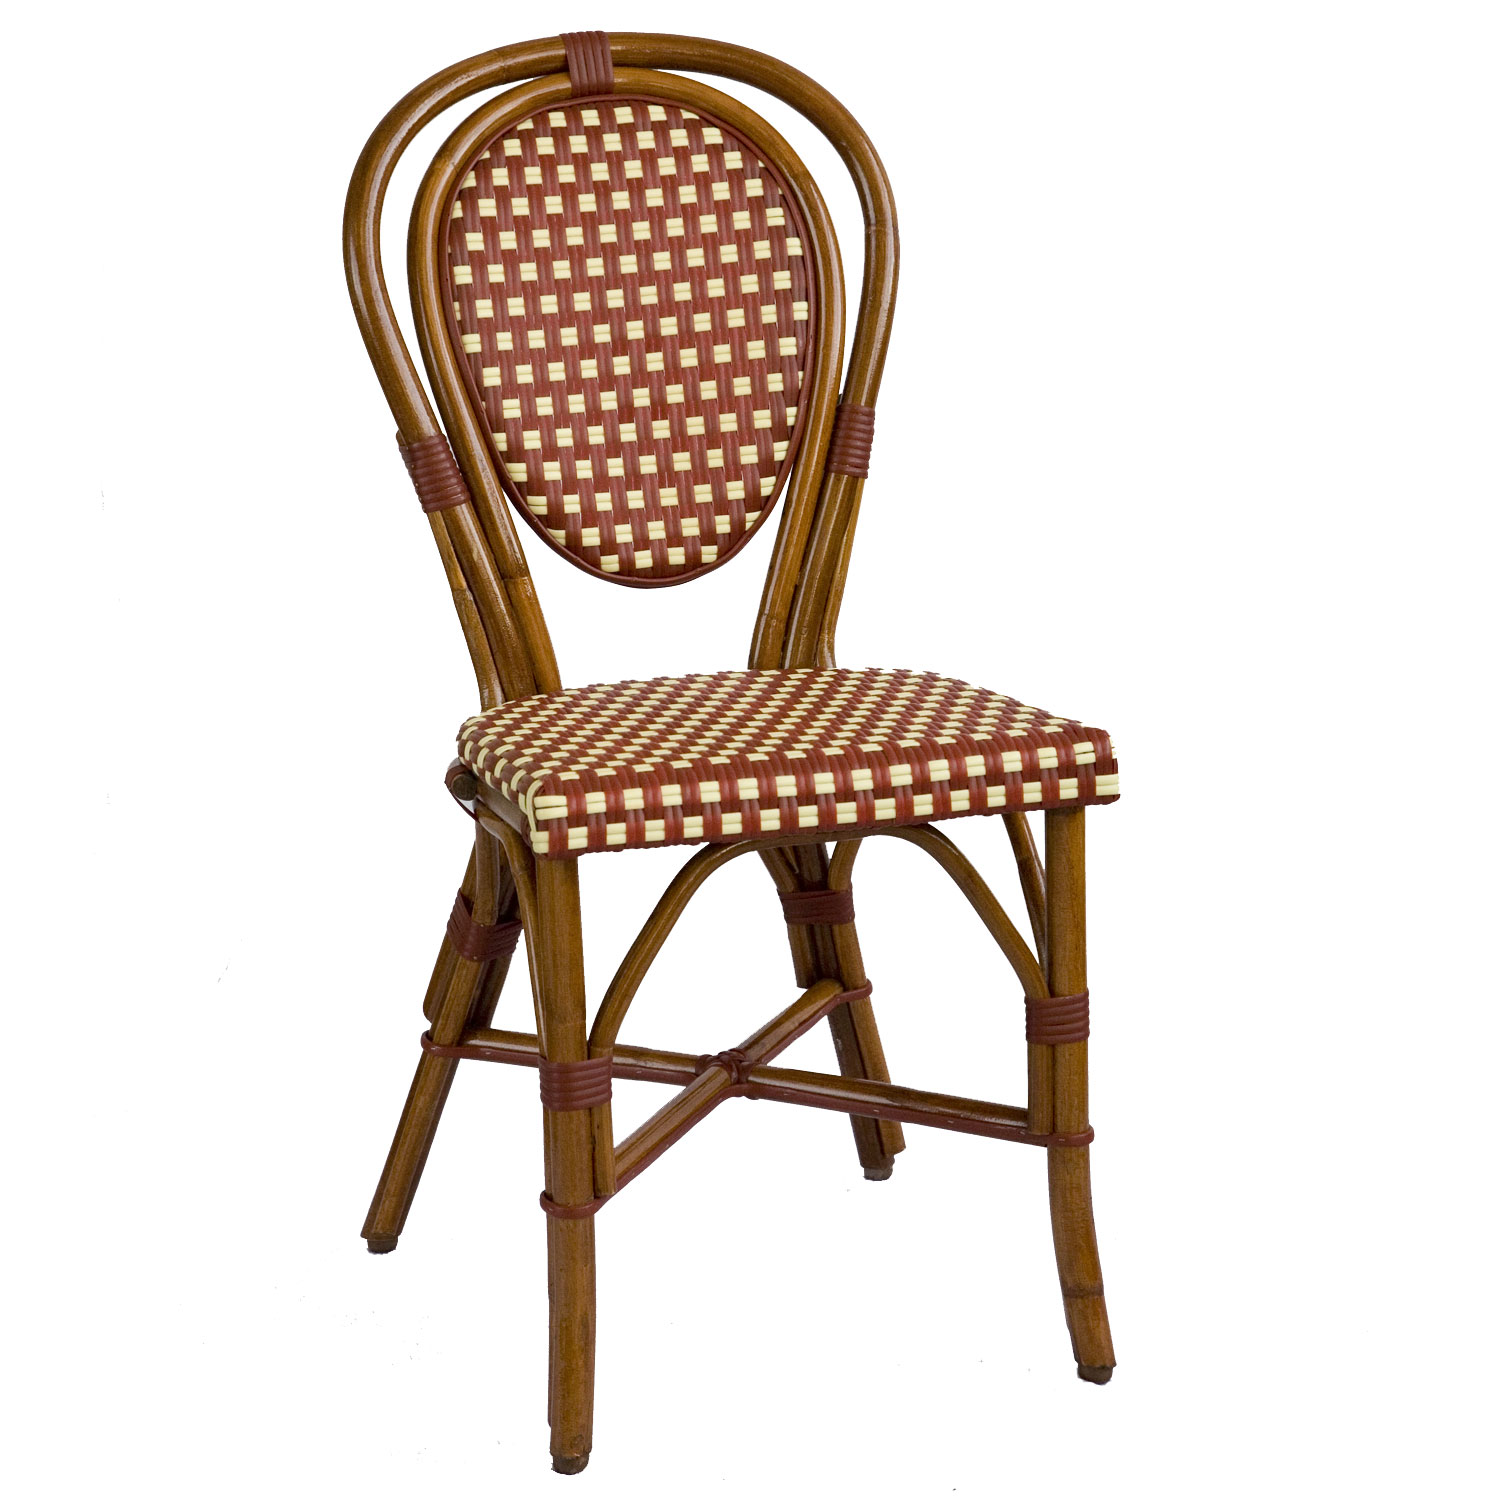 bistro chairs parisian rattan chair - burgundy/cream sq | american country IKHVDDK